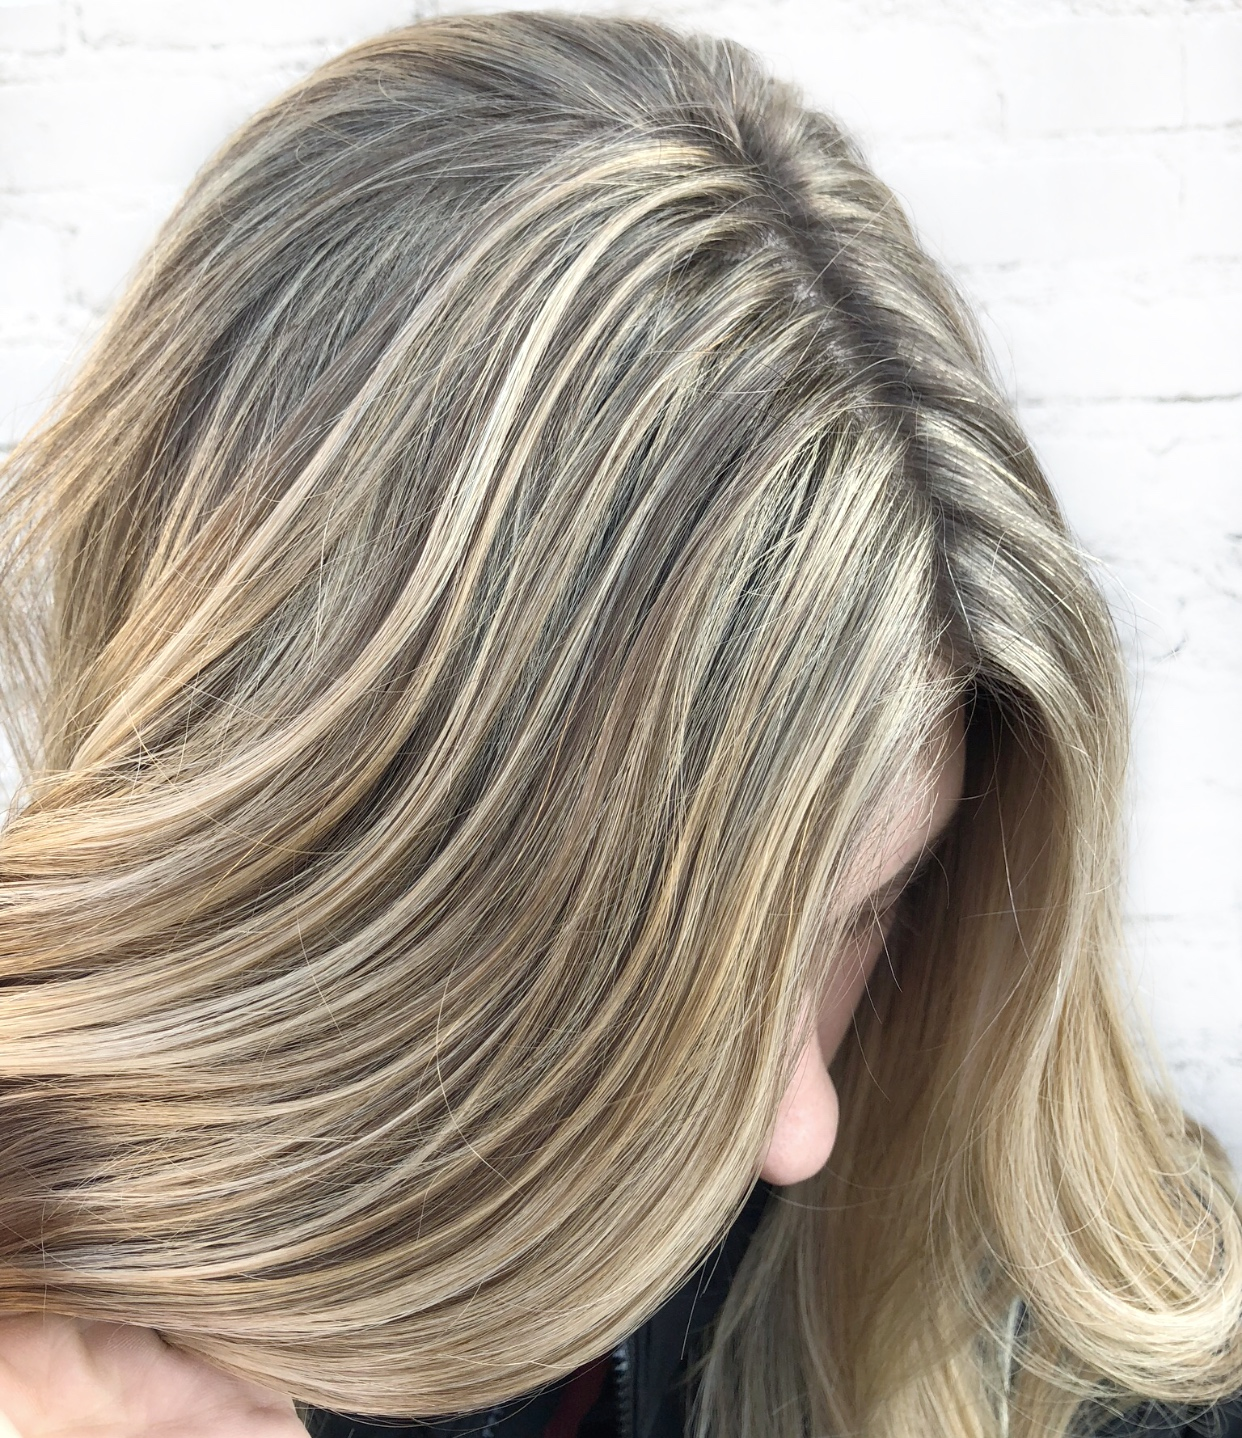 Basic Highlight - As you can see the color goes all the way up to the base of the hair and is solid the whole way through the hair.